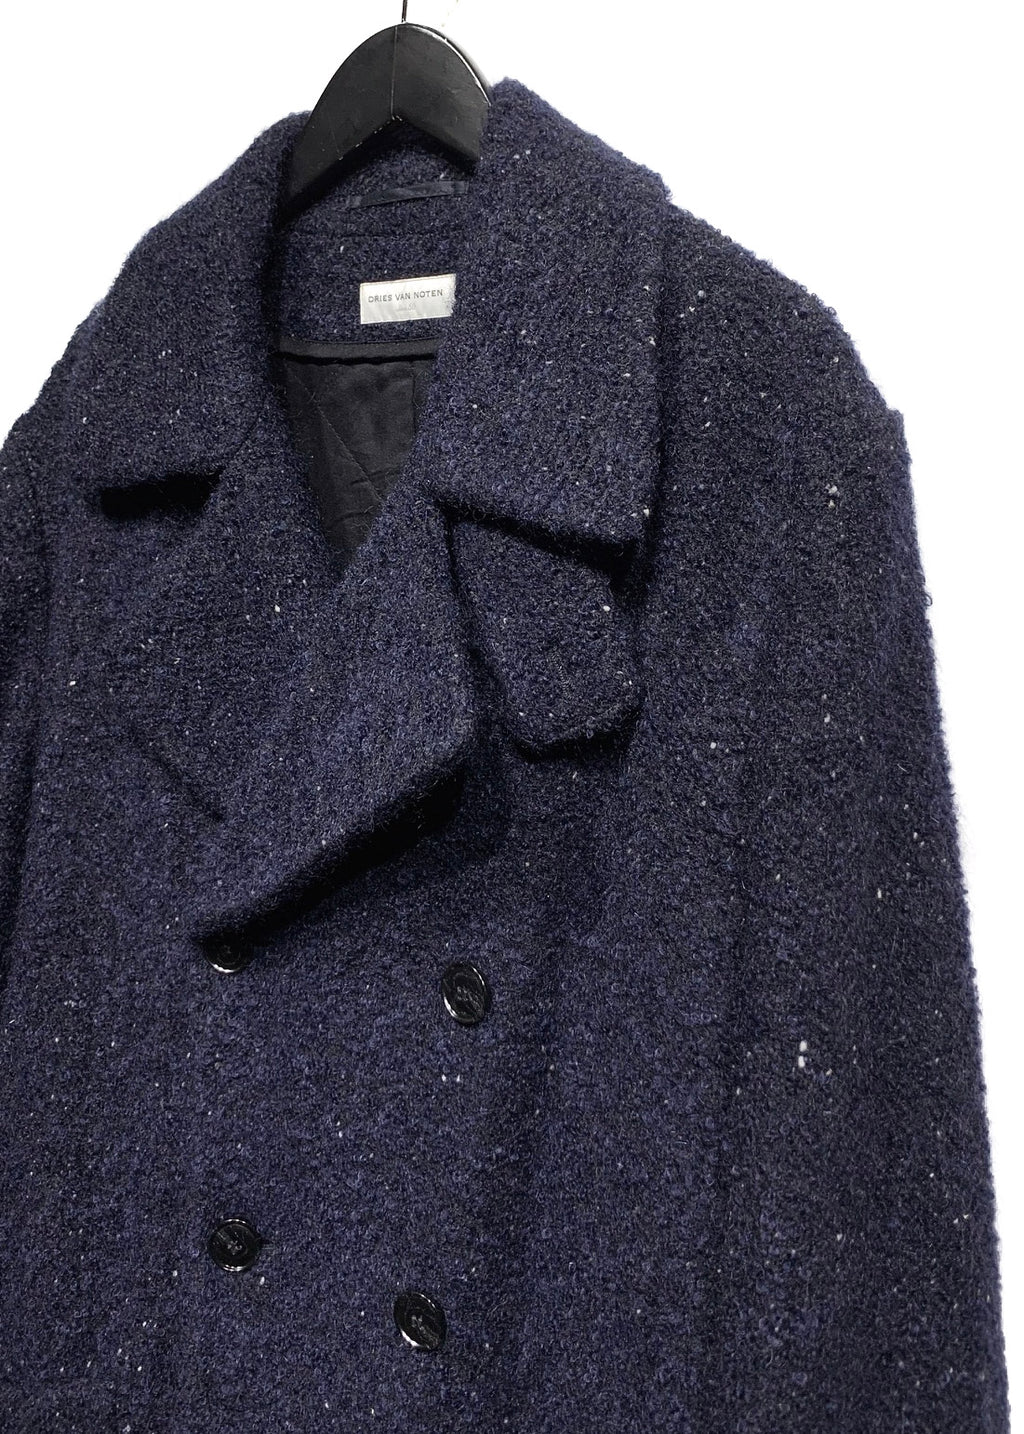 Dries Van Noten Navy Black Bouclé Doublebreasted Peacoat